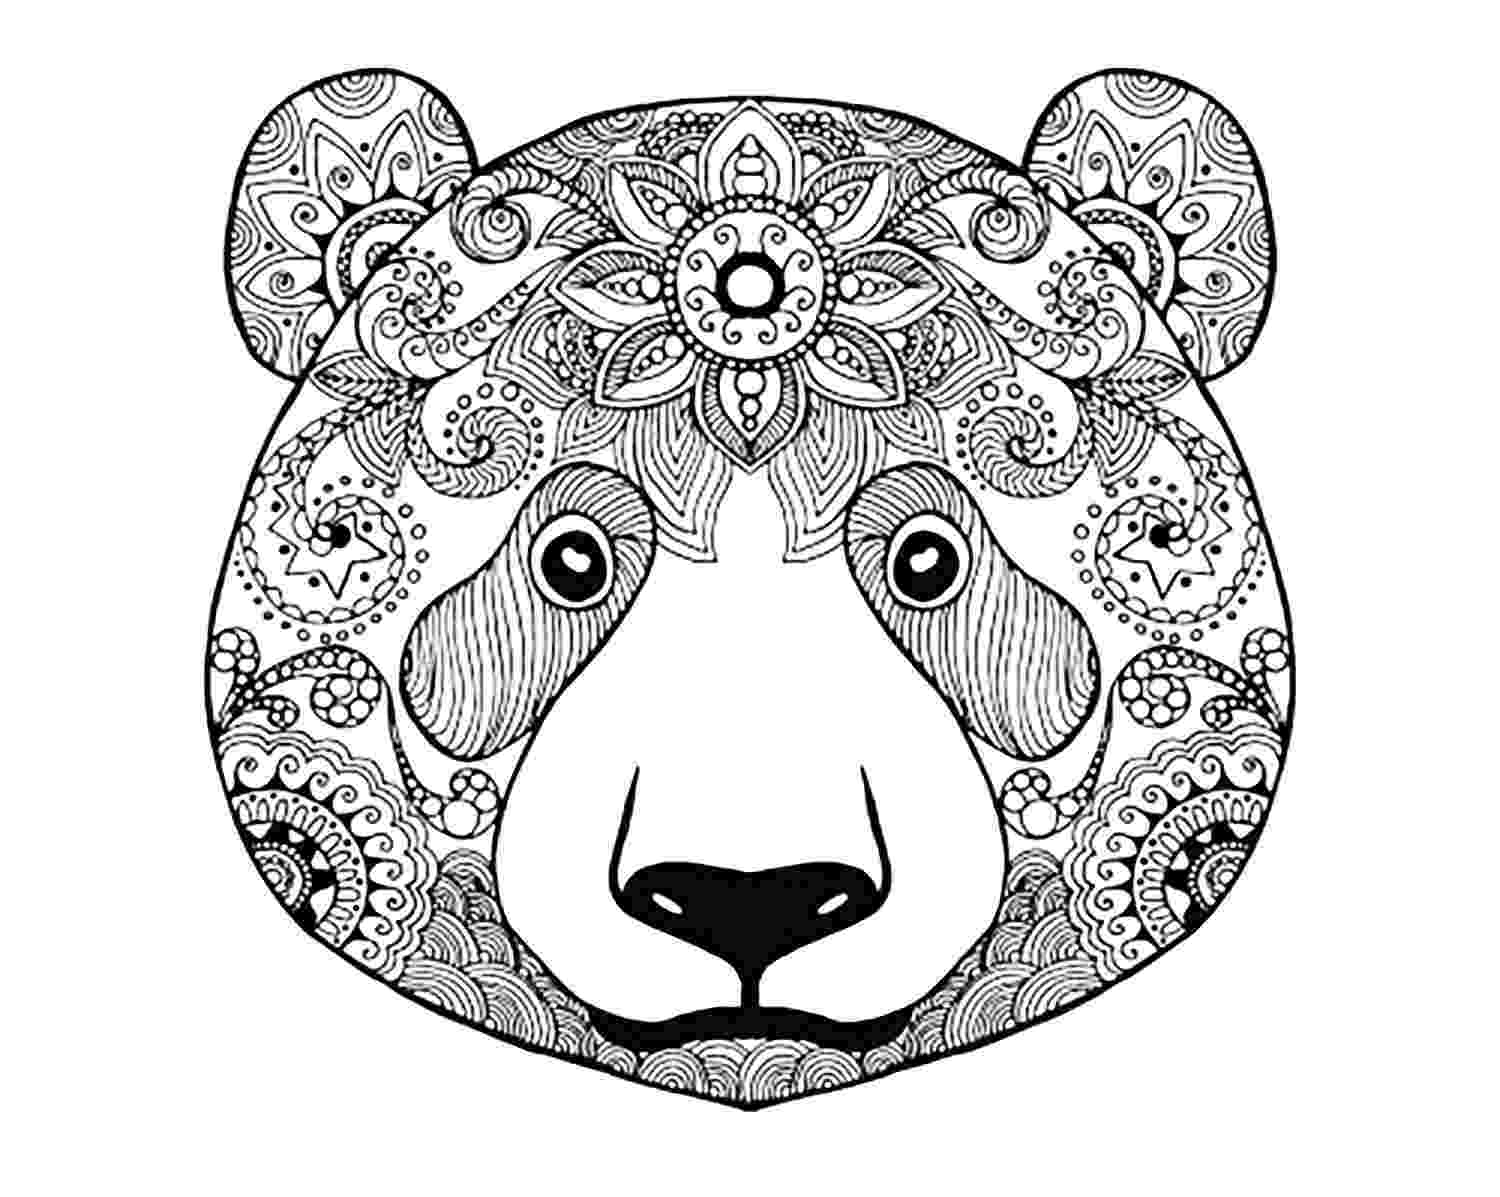 colouring pages for adults animals adult coloring pages animals best coloring pages for kids for adults pages colouring animals